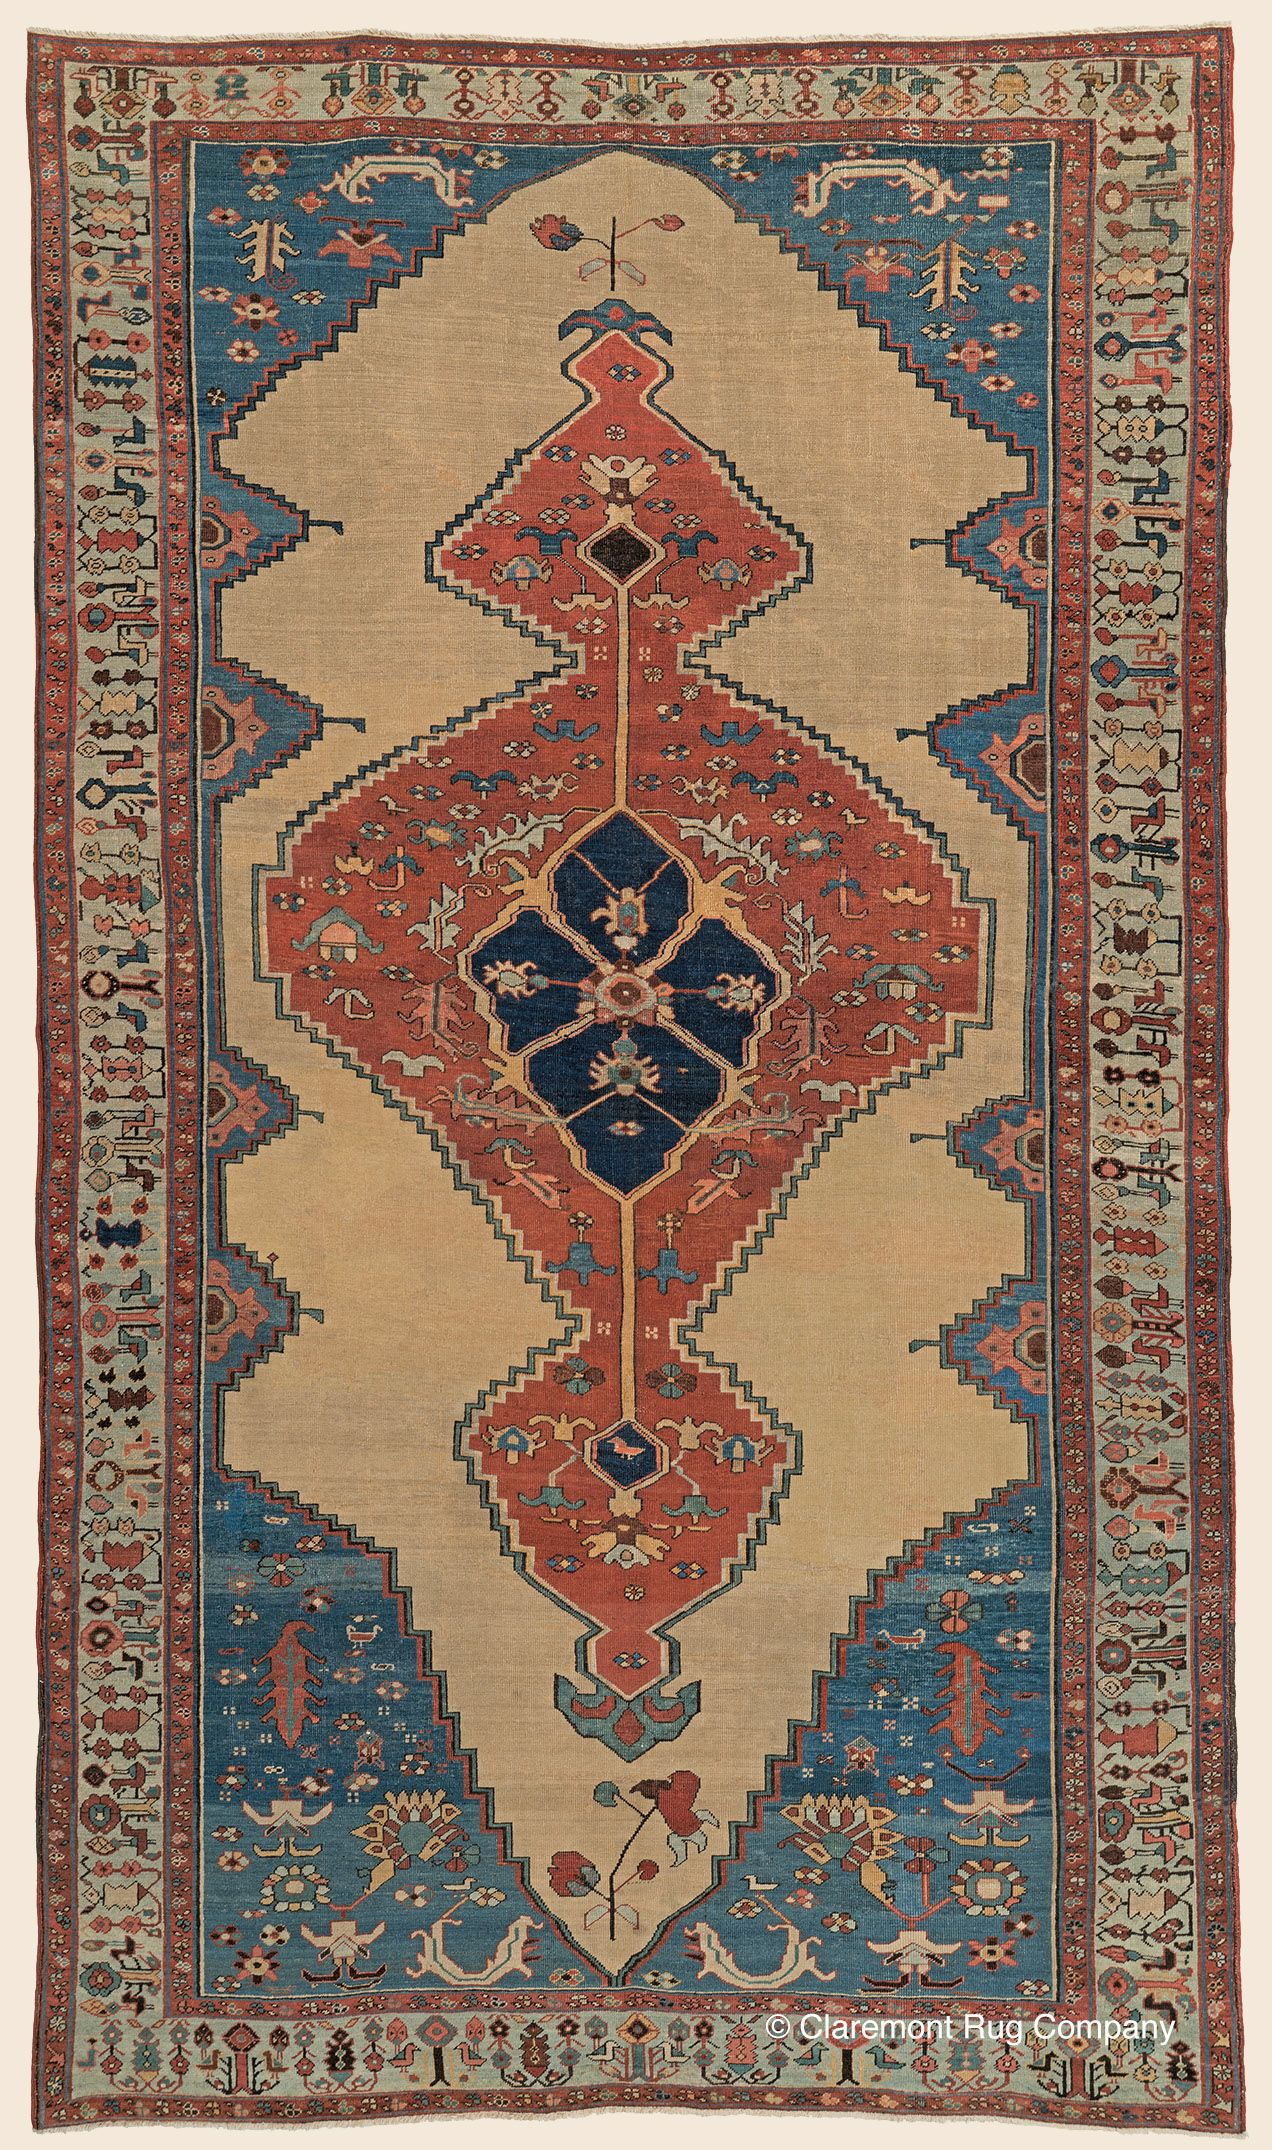 Claremont Rug Company S 2018 Year End Overview Rugs Rugs On Carpet Carpet Runner